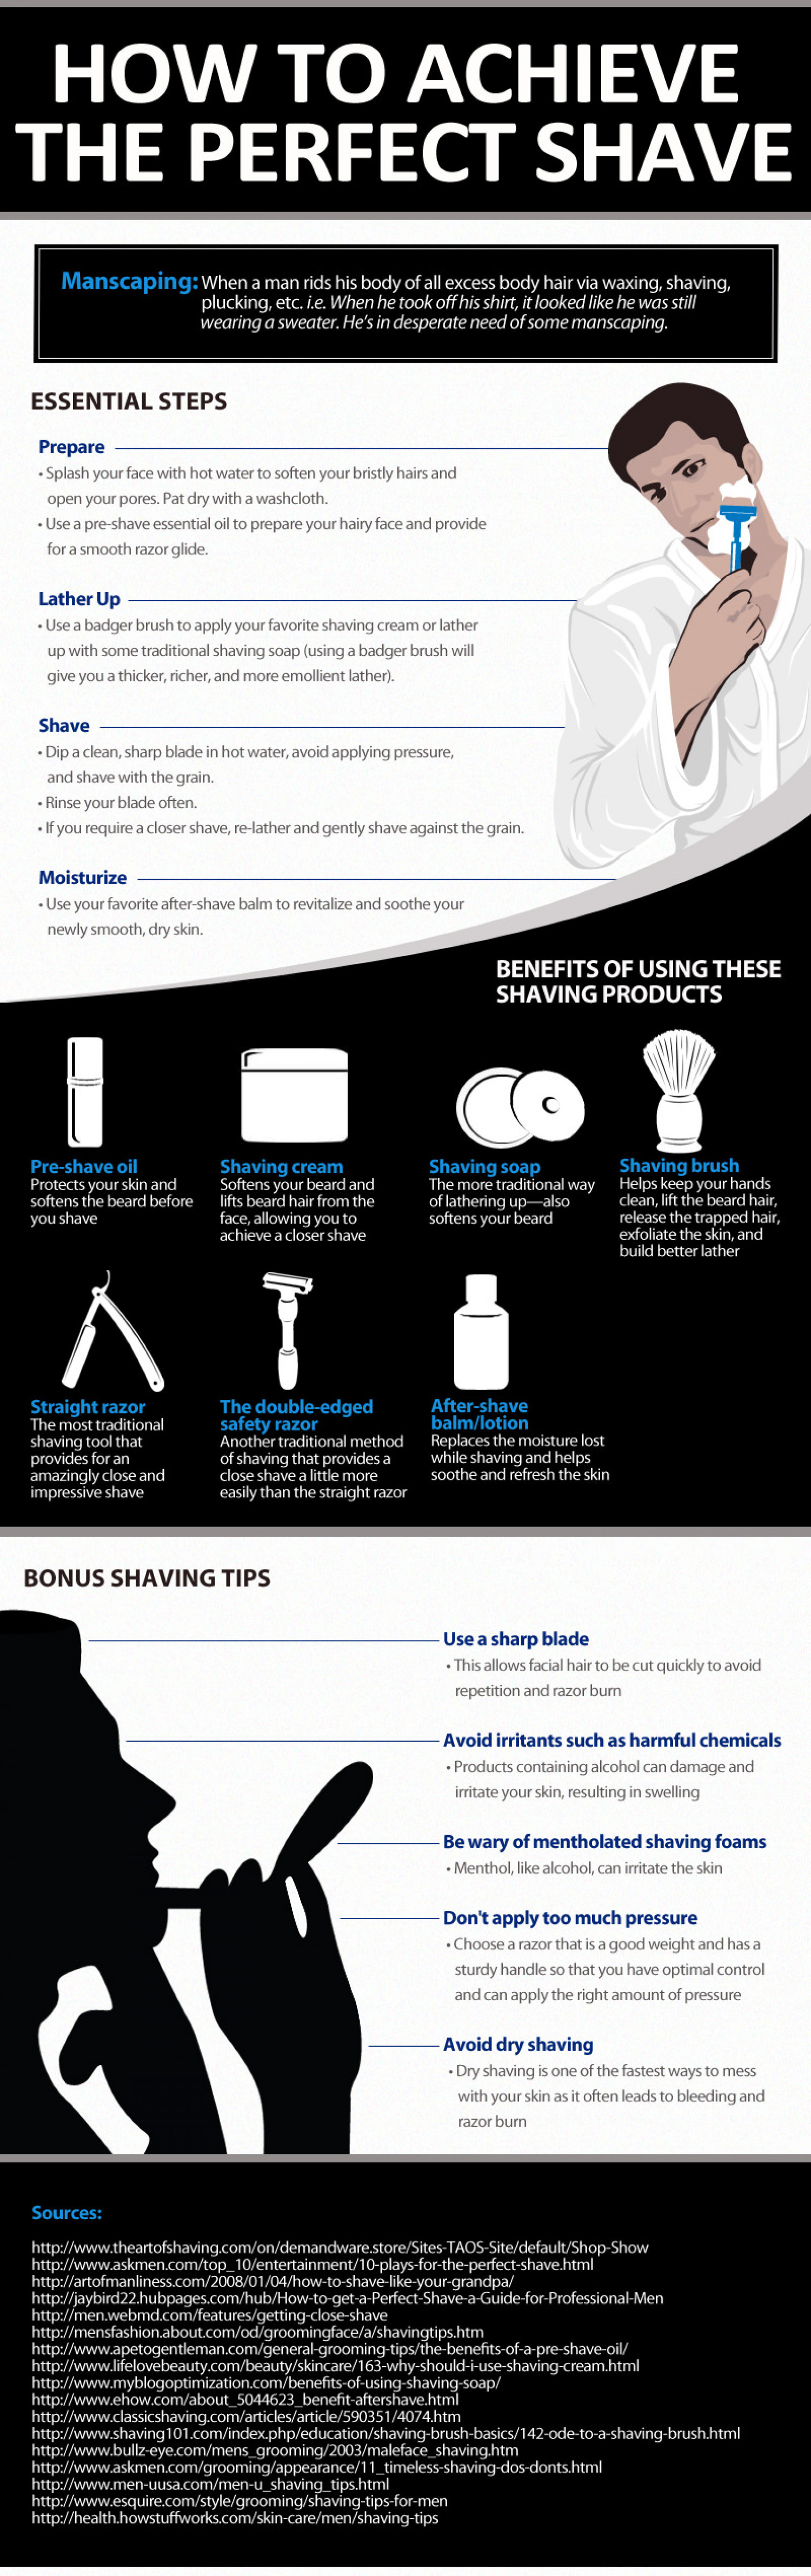 How to achieve the perfect shave Infographic